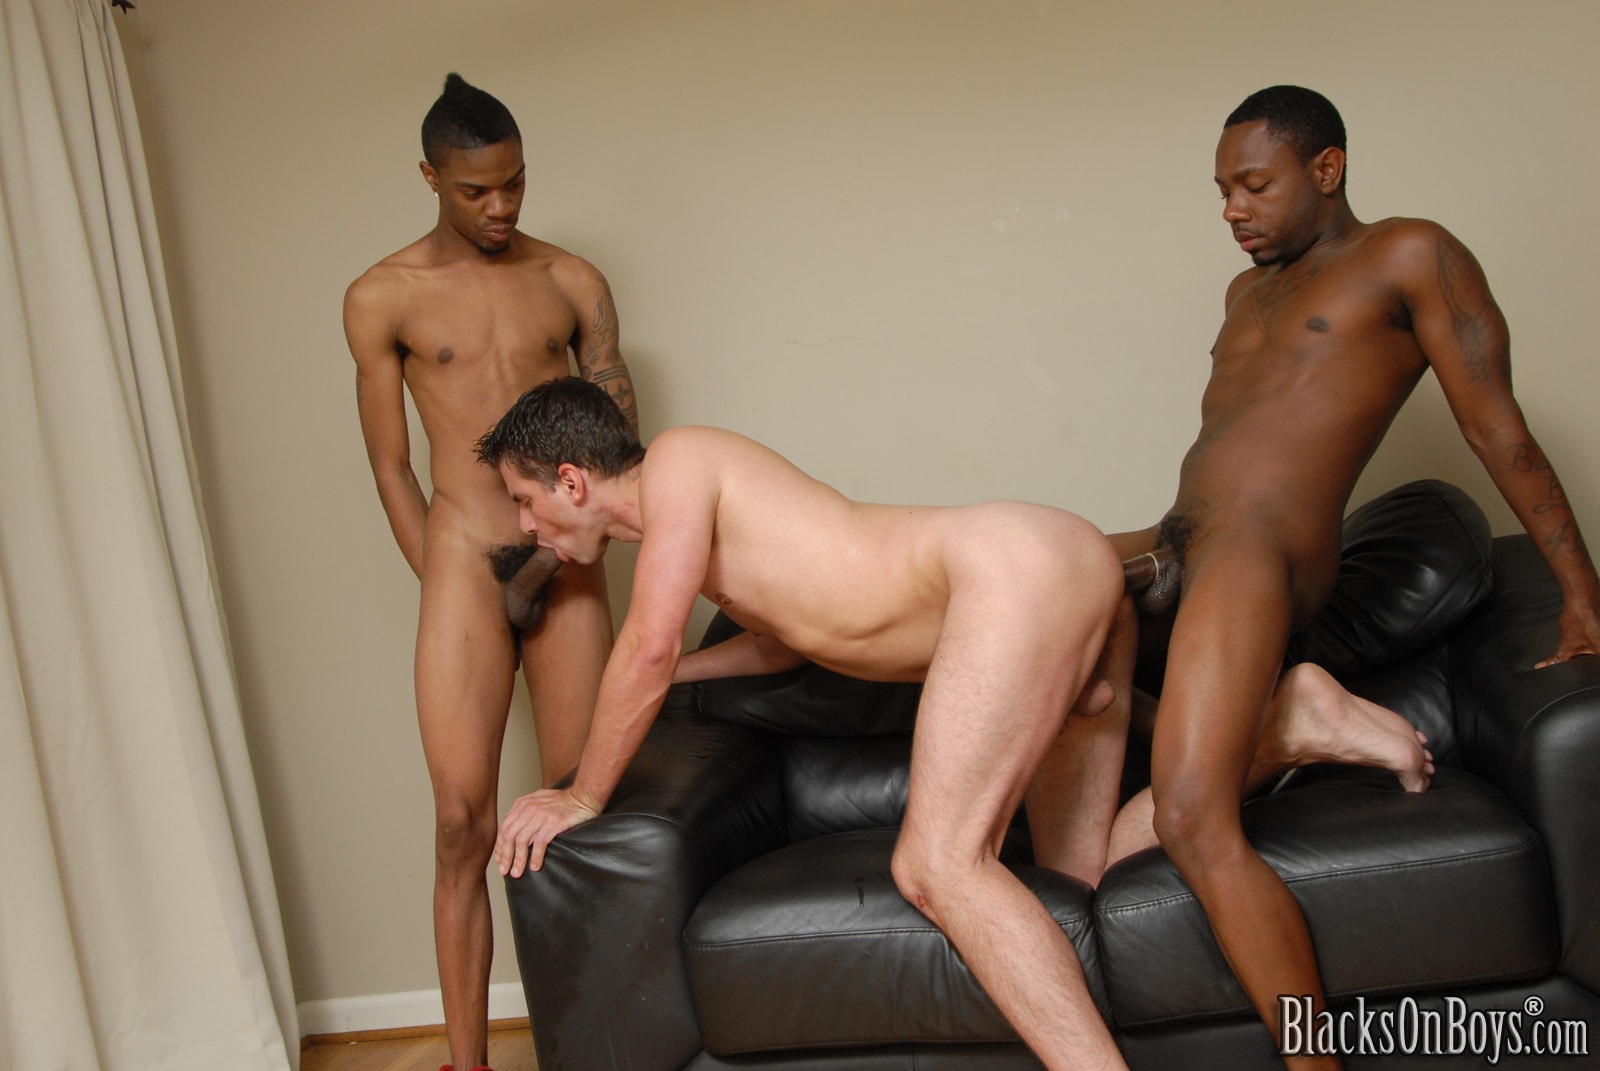 Dogfart Men '- Blacks On Boys' starring Diablo (Photo 21)